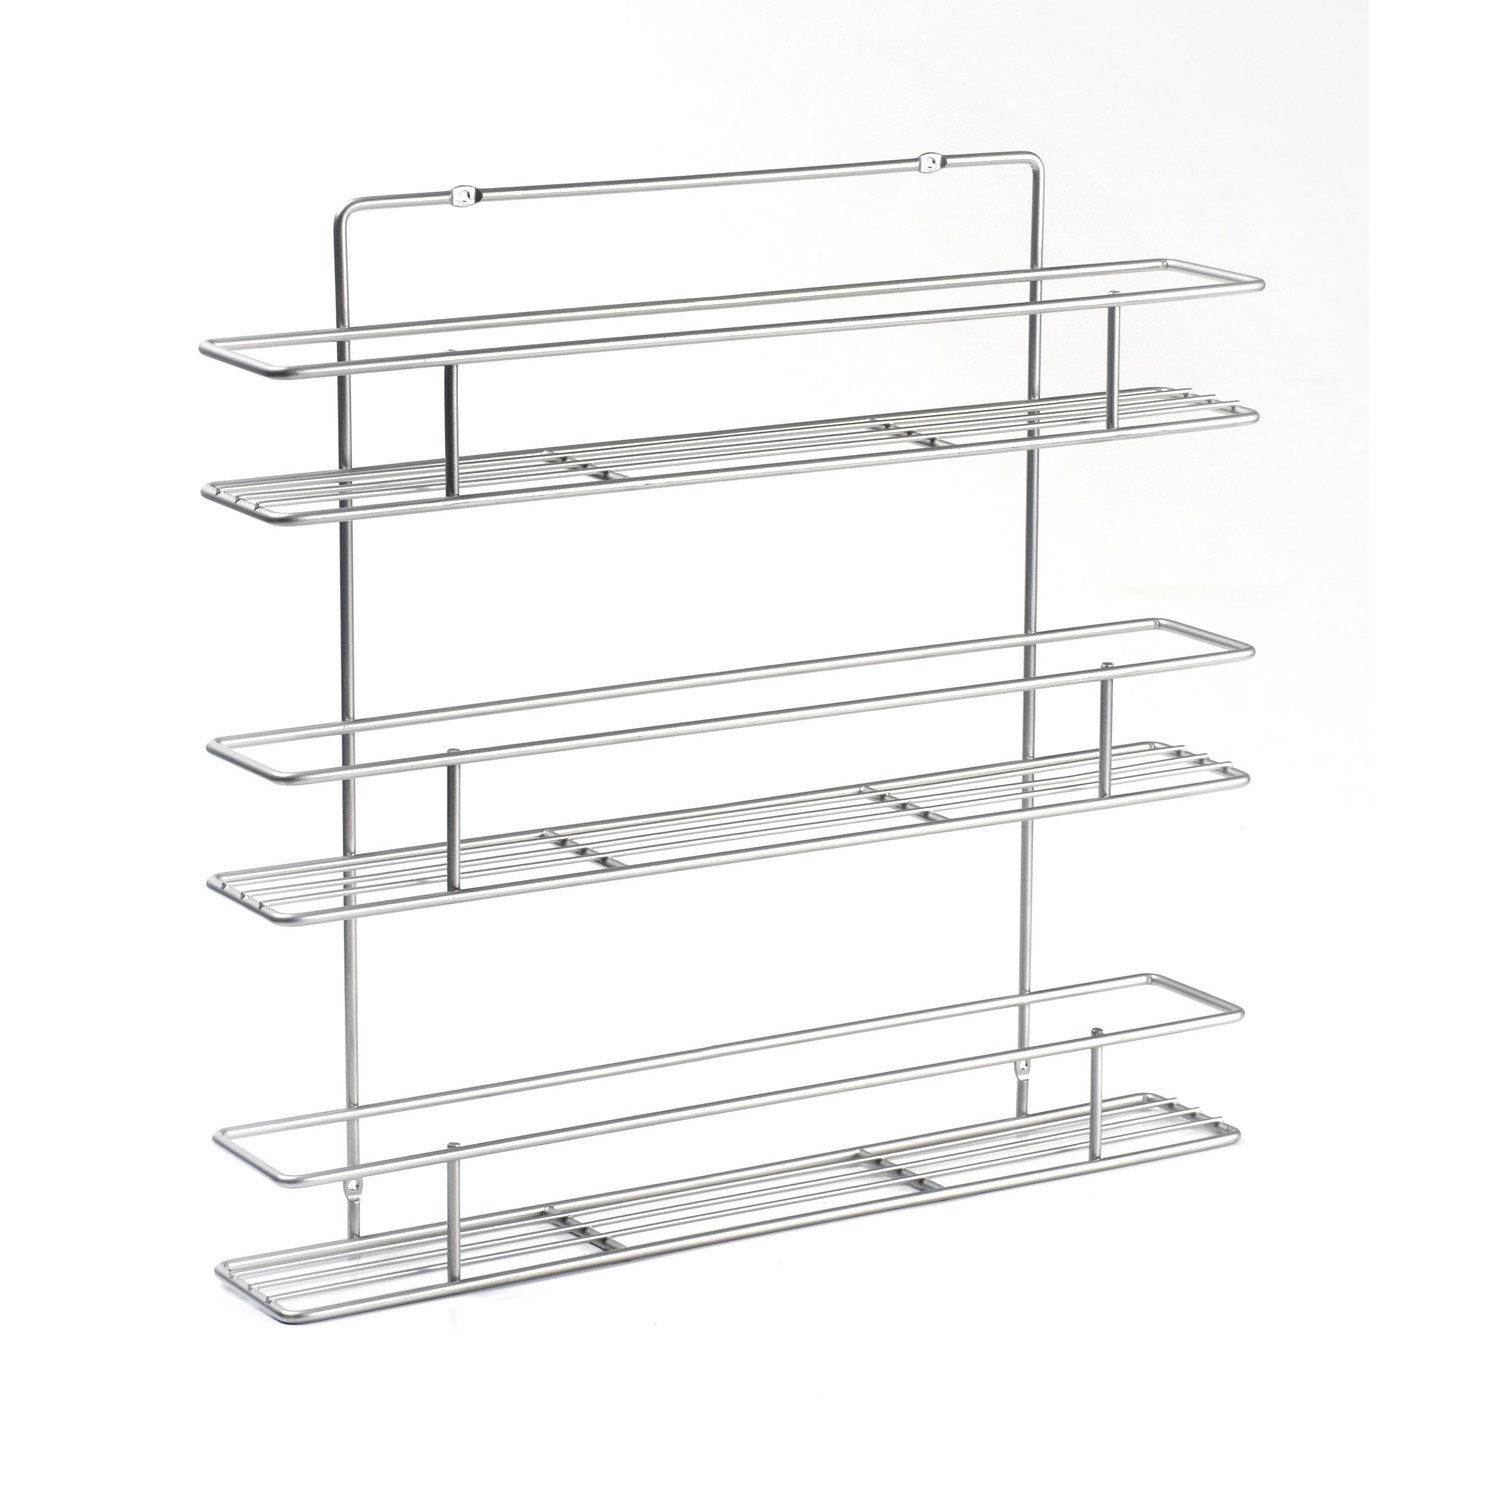 Etag re m tal epoxy leroy merlin - Leroy merlin etagere metal ...